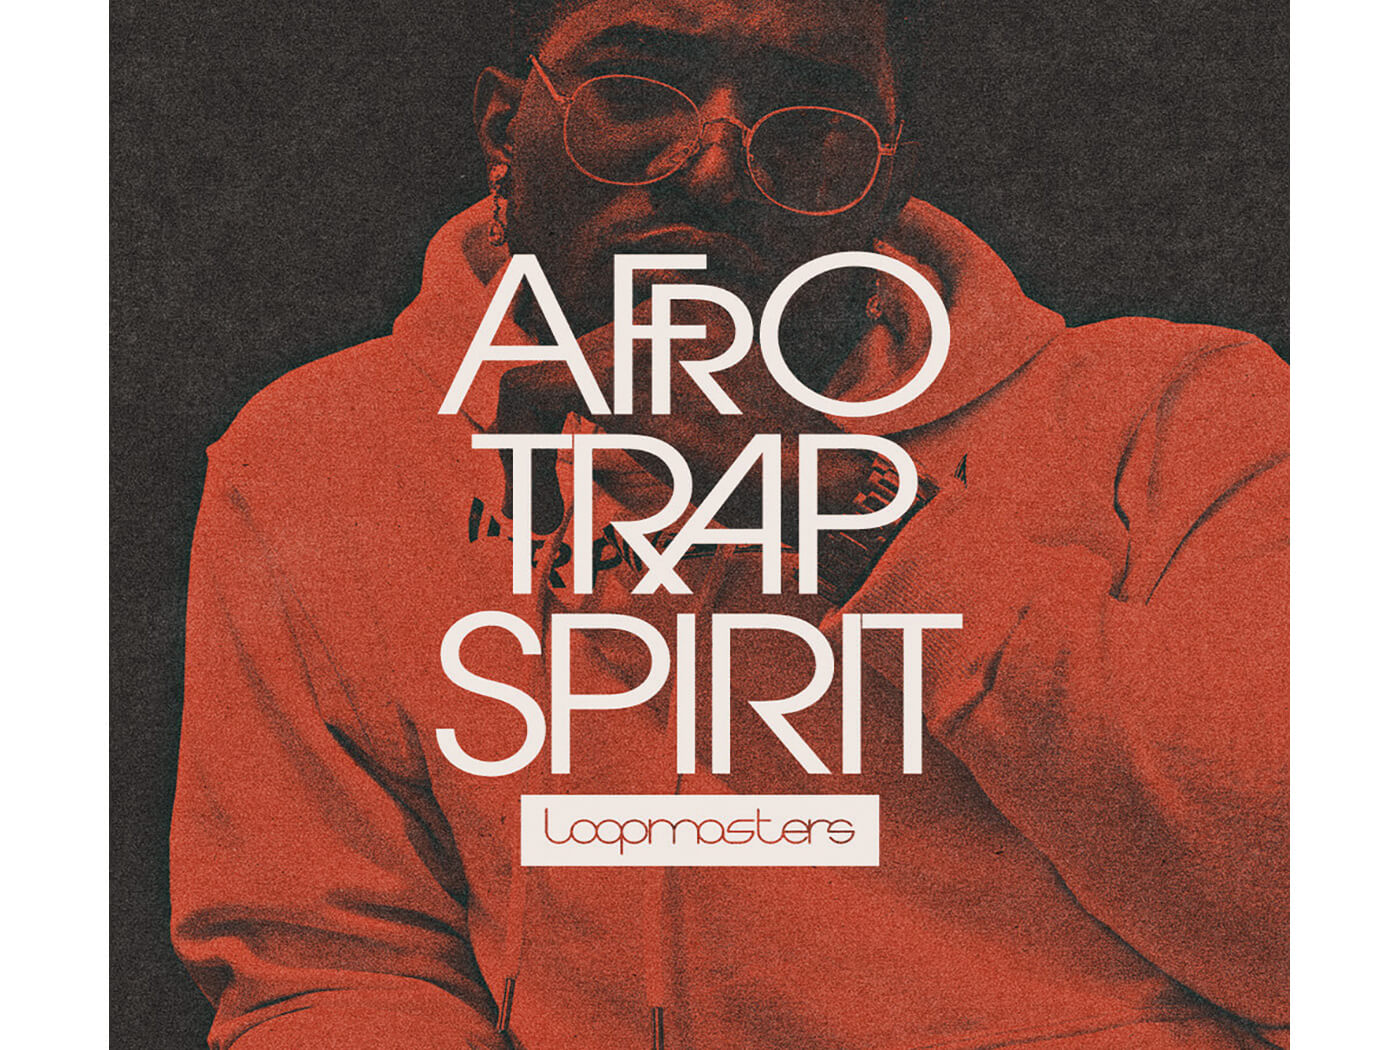 Review: Loopmasters Afrotrap Spirit